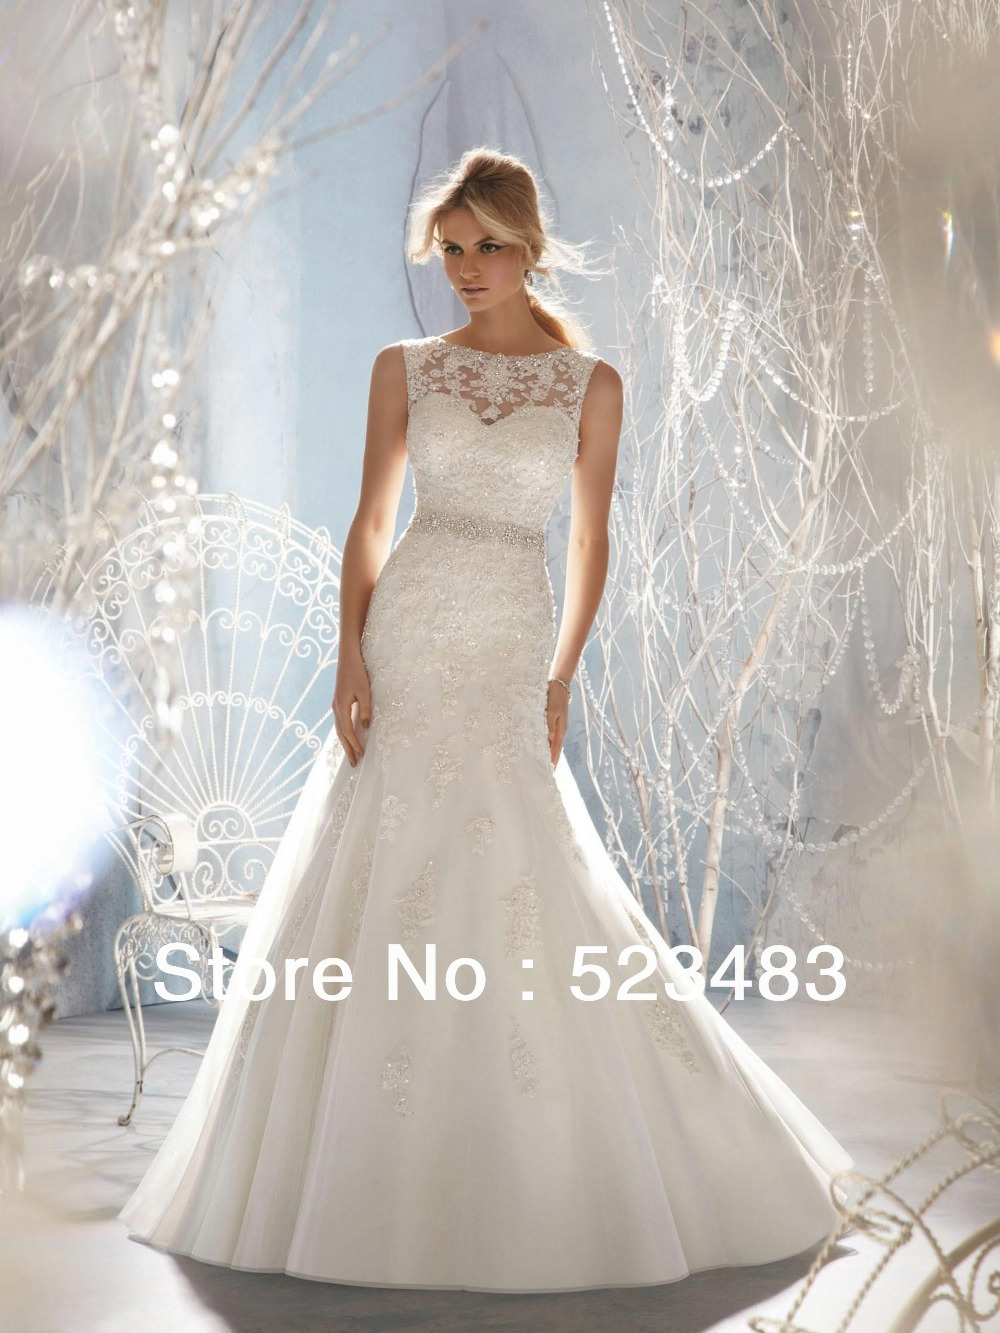 sale wedding dresses wedding dress sales Kiely Gown